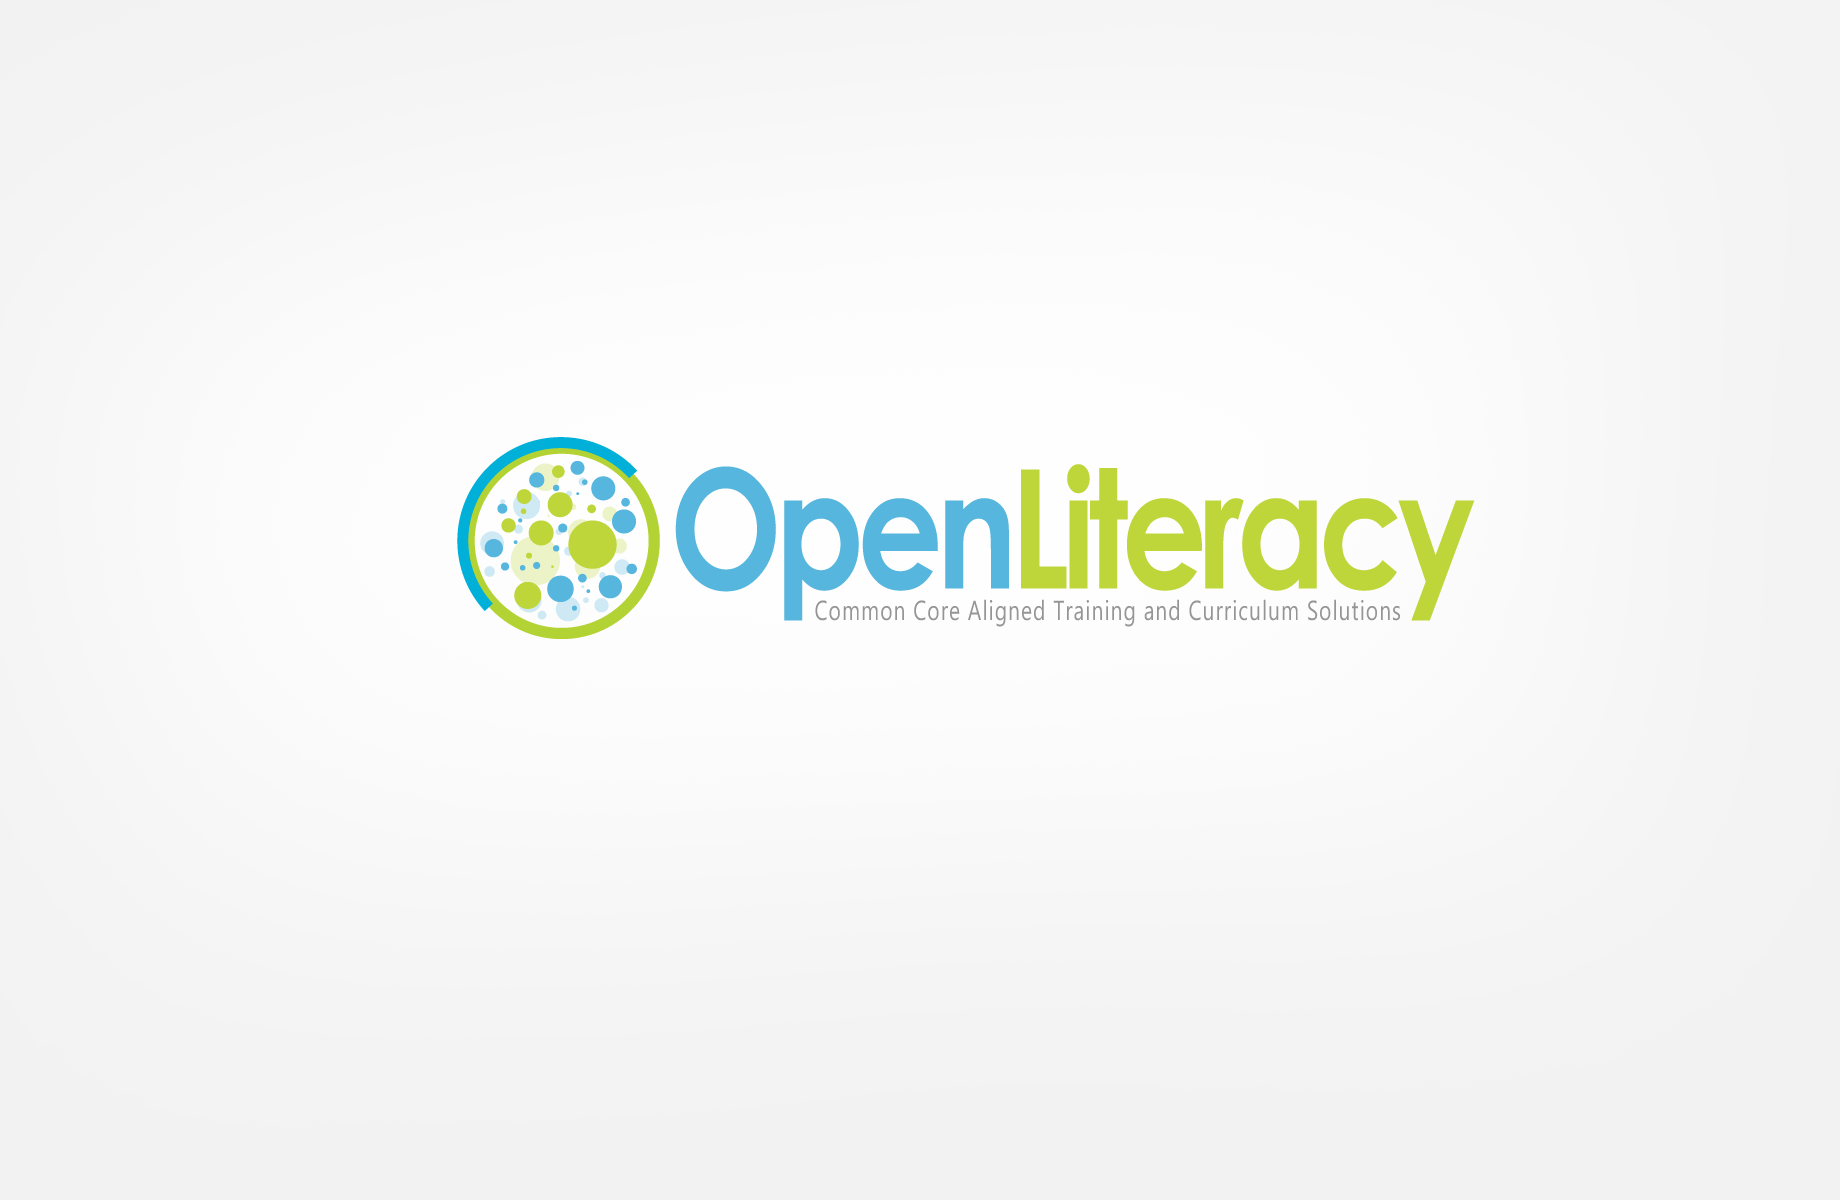 Logo Design by Jan Chua - Entry No. 33 in the Logo Design Contest Inspiring Logo Design for OpenLiteracy.